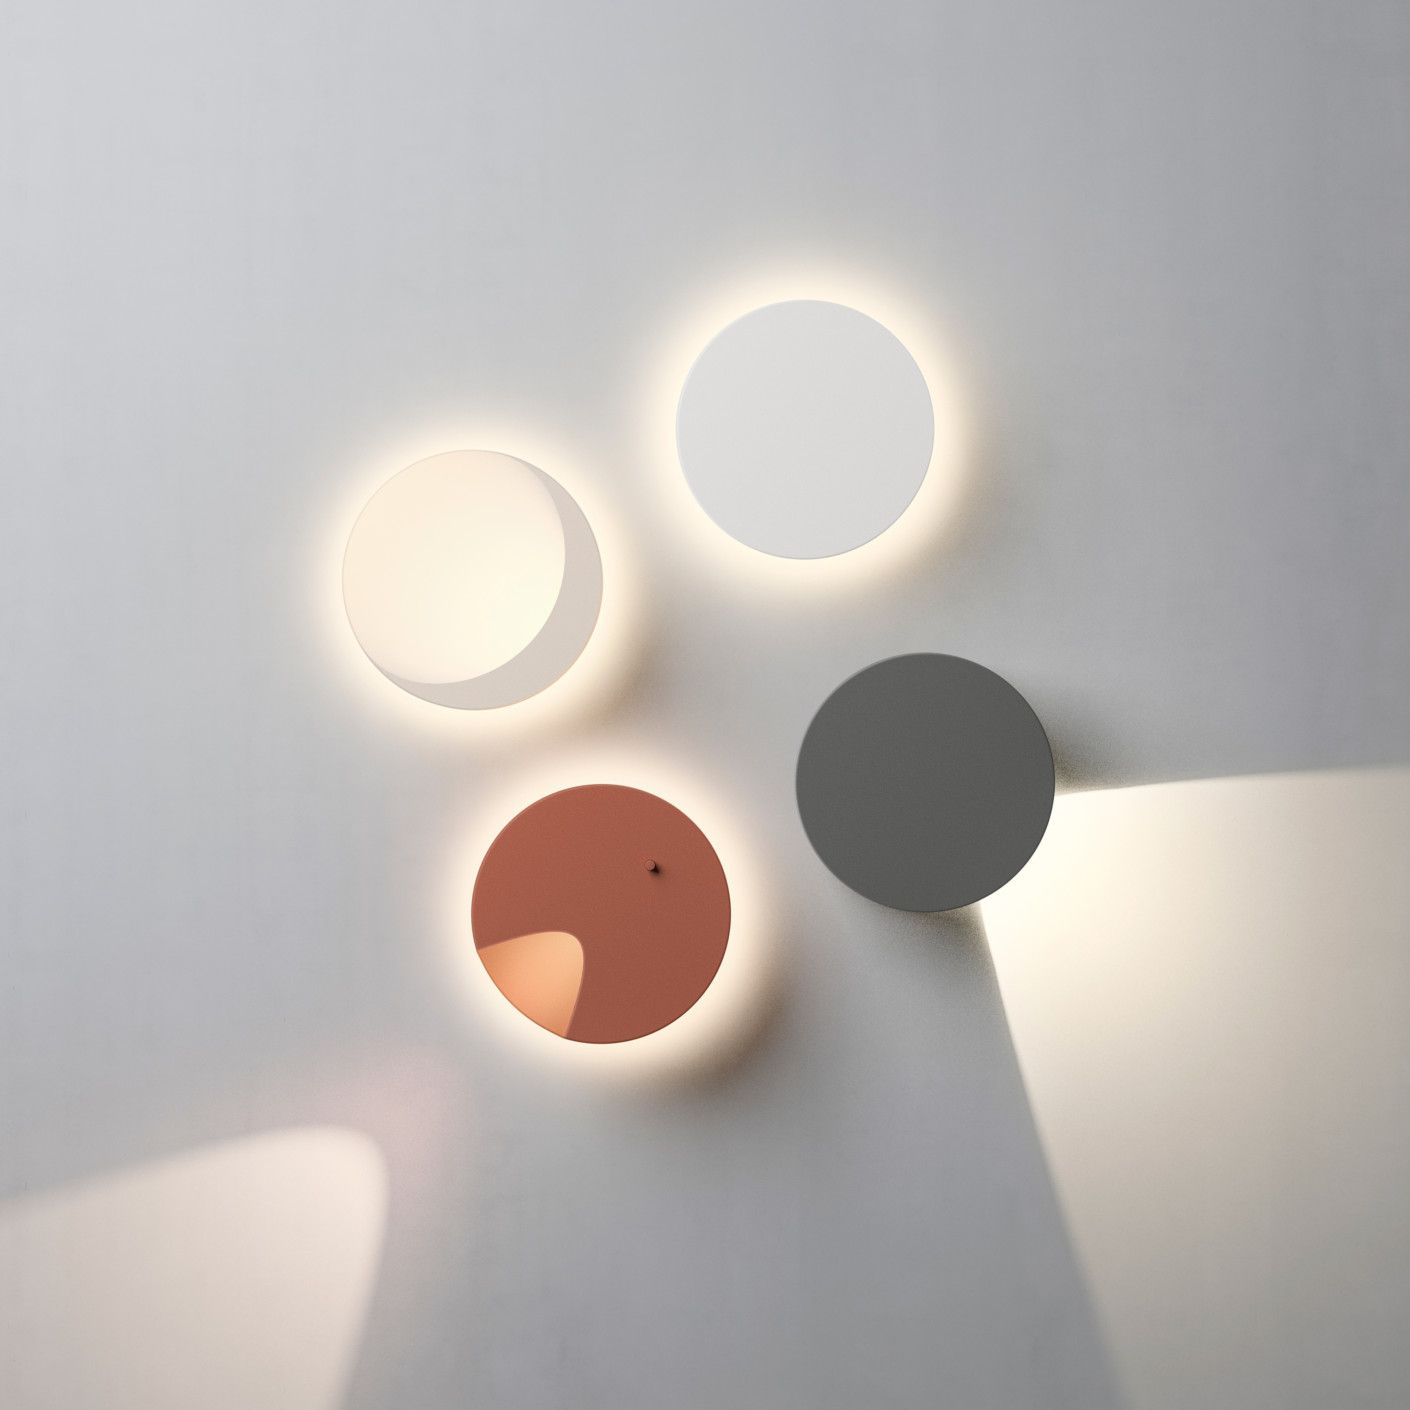 Dots Designer Wall Mounted Lights By Vibia Comprehensive Product Design Information Catalogs Get Insp Light Wall Art Wall Lights Wall Lighting Design